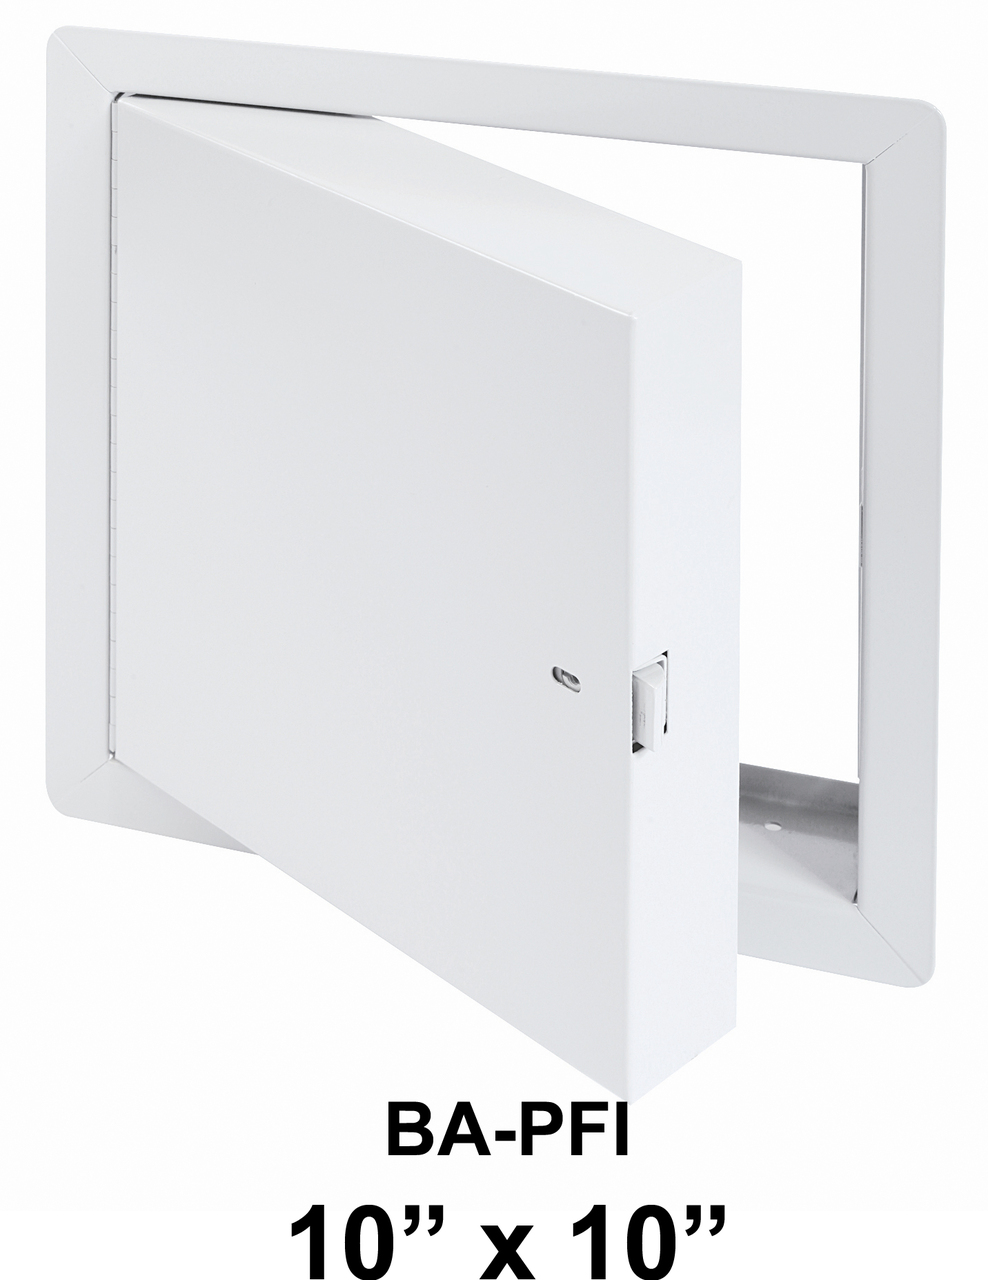 Fire Rated Access Doors BA-PFI 10 x 10 Insulated with Flange – BEST